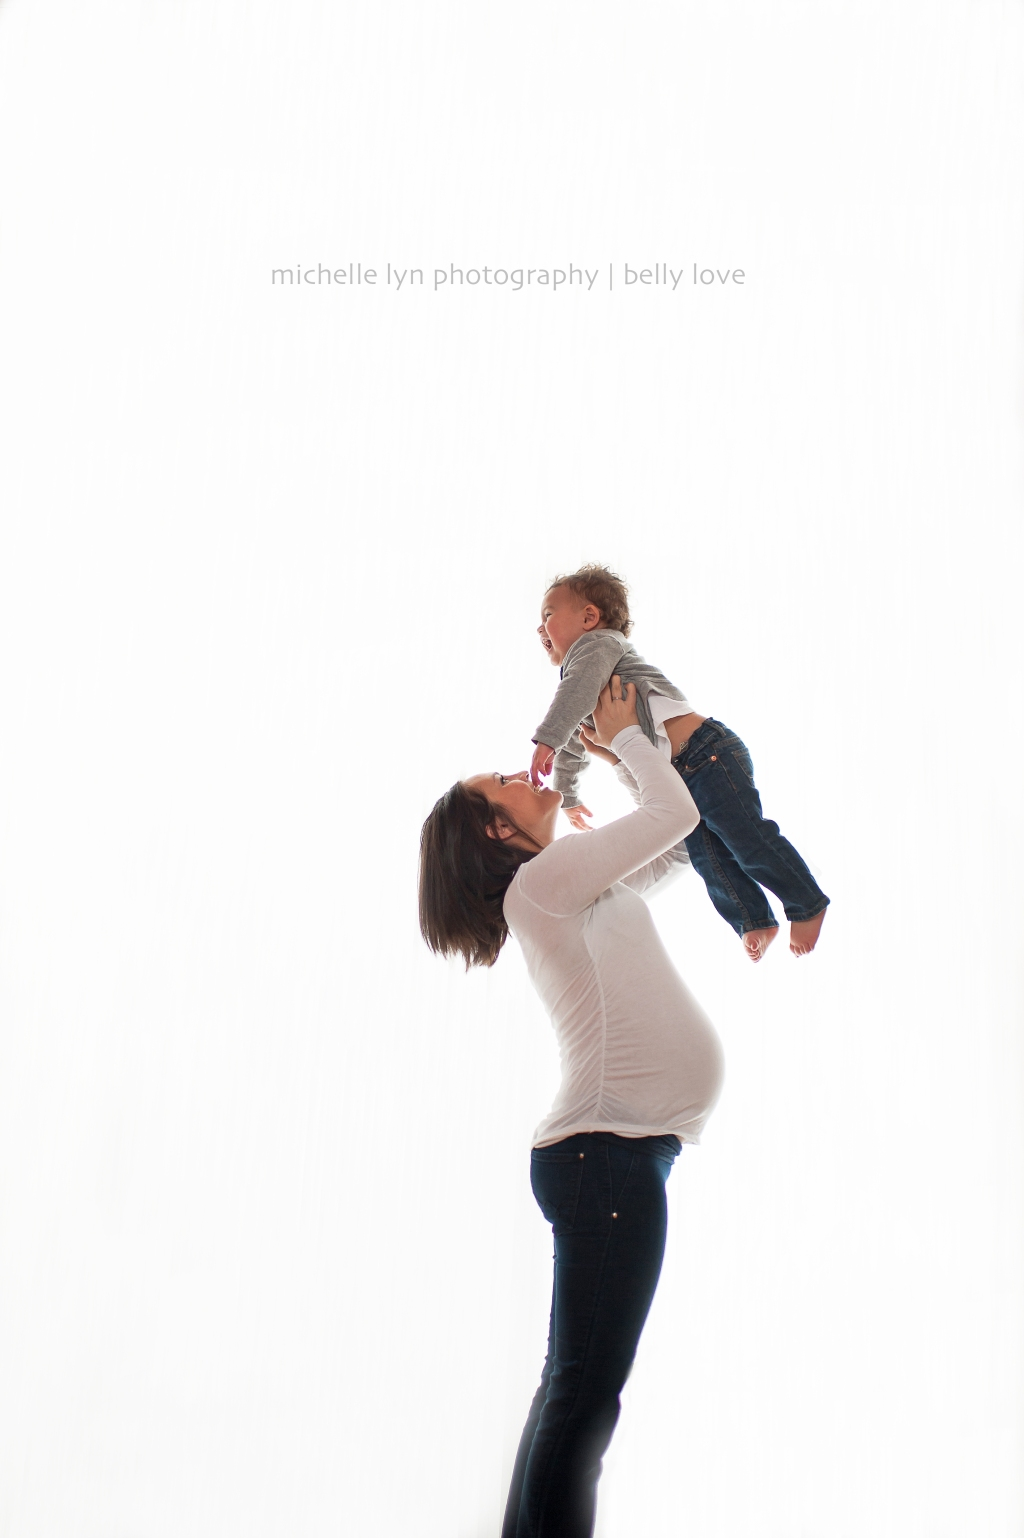 Michelle Lyn Photography {Maternity Photographer}